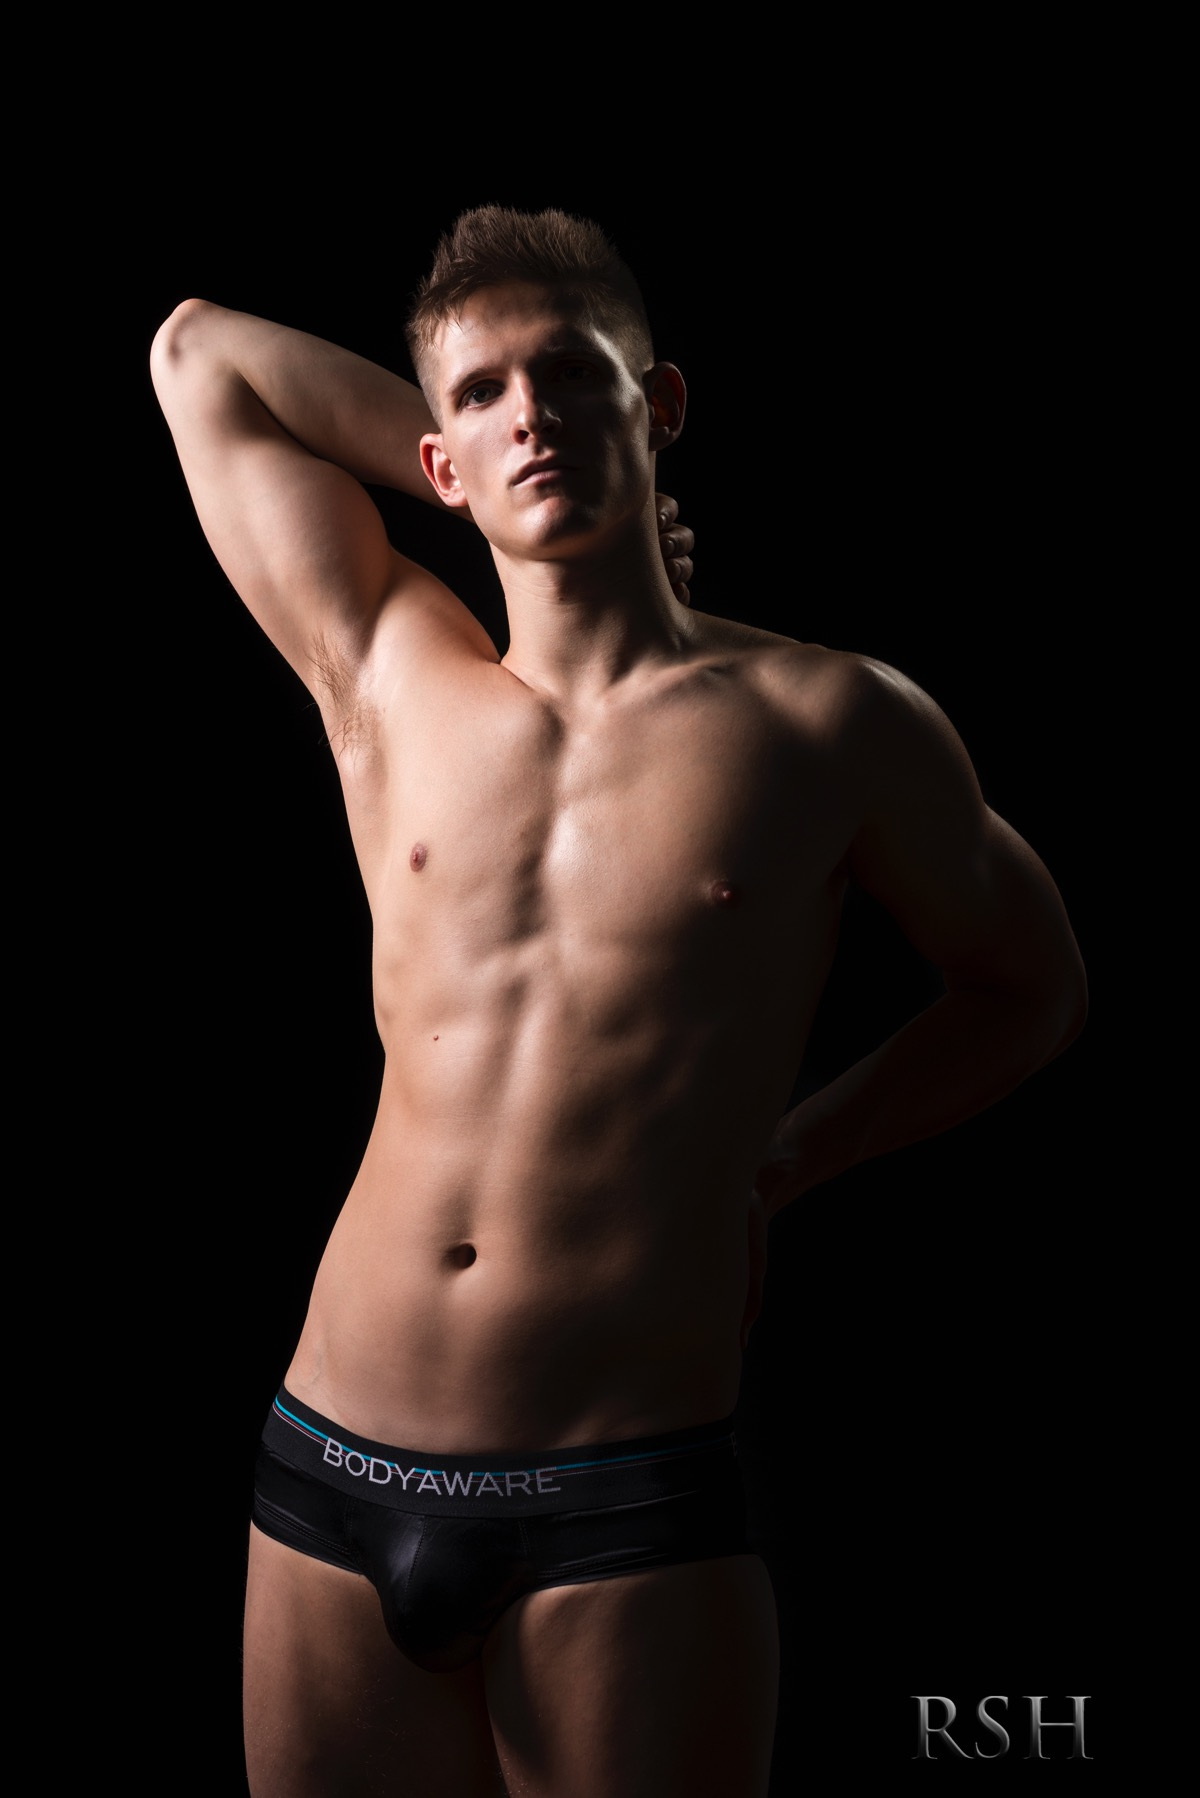 Brief Distraction featuring BodyAware by RSH Photo